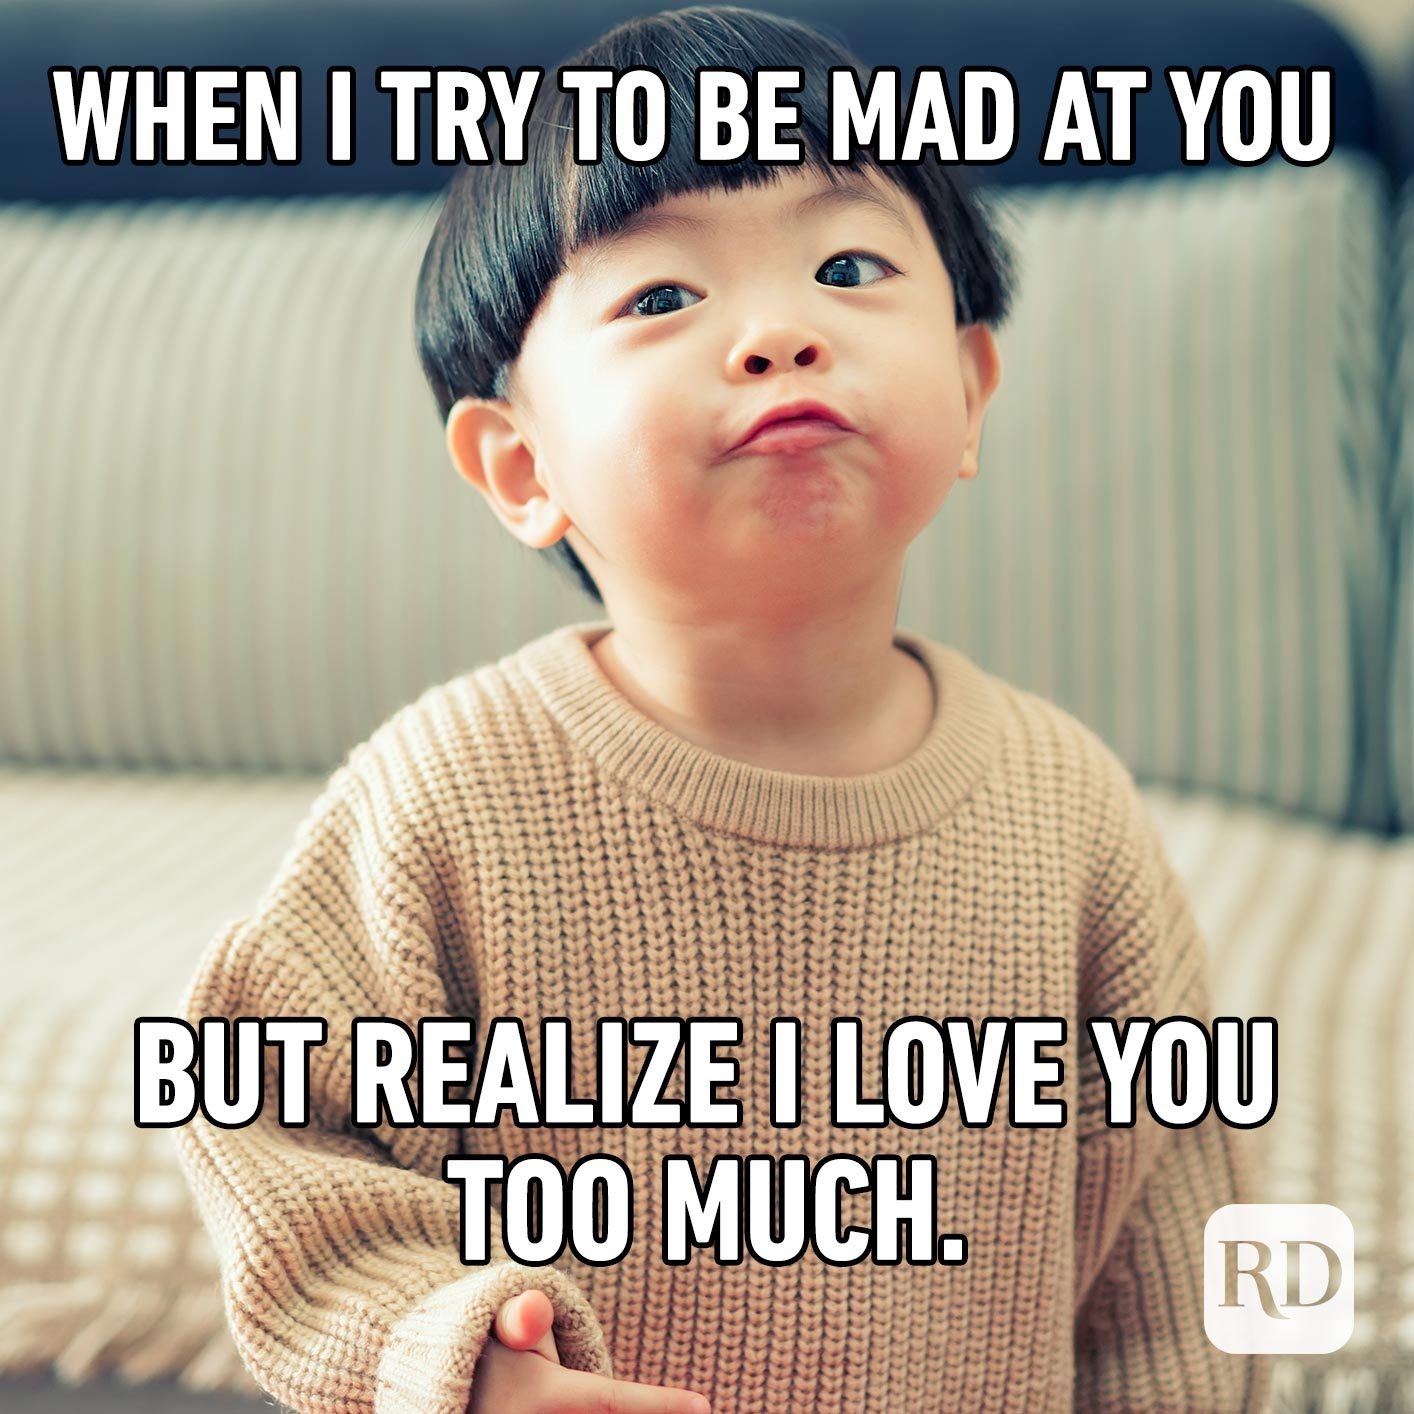 Angry child. Meme text: When I try to be mad at you but realize I love you too much.